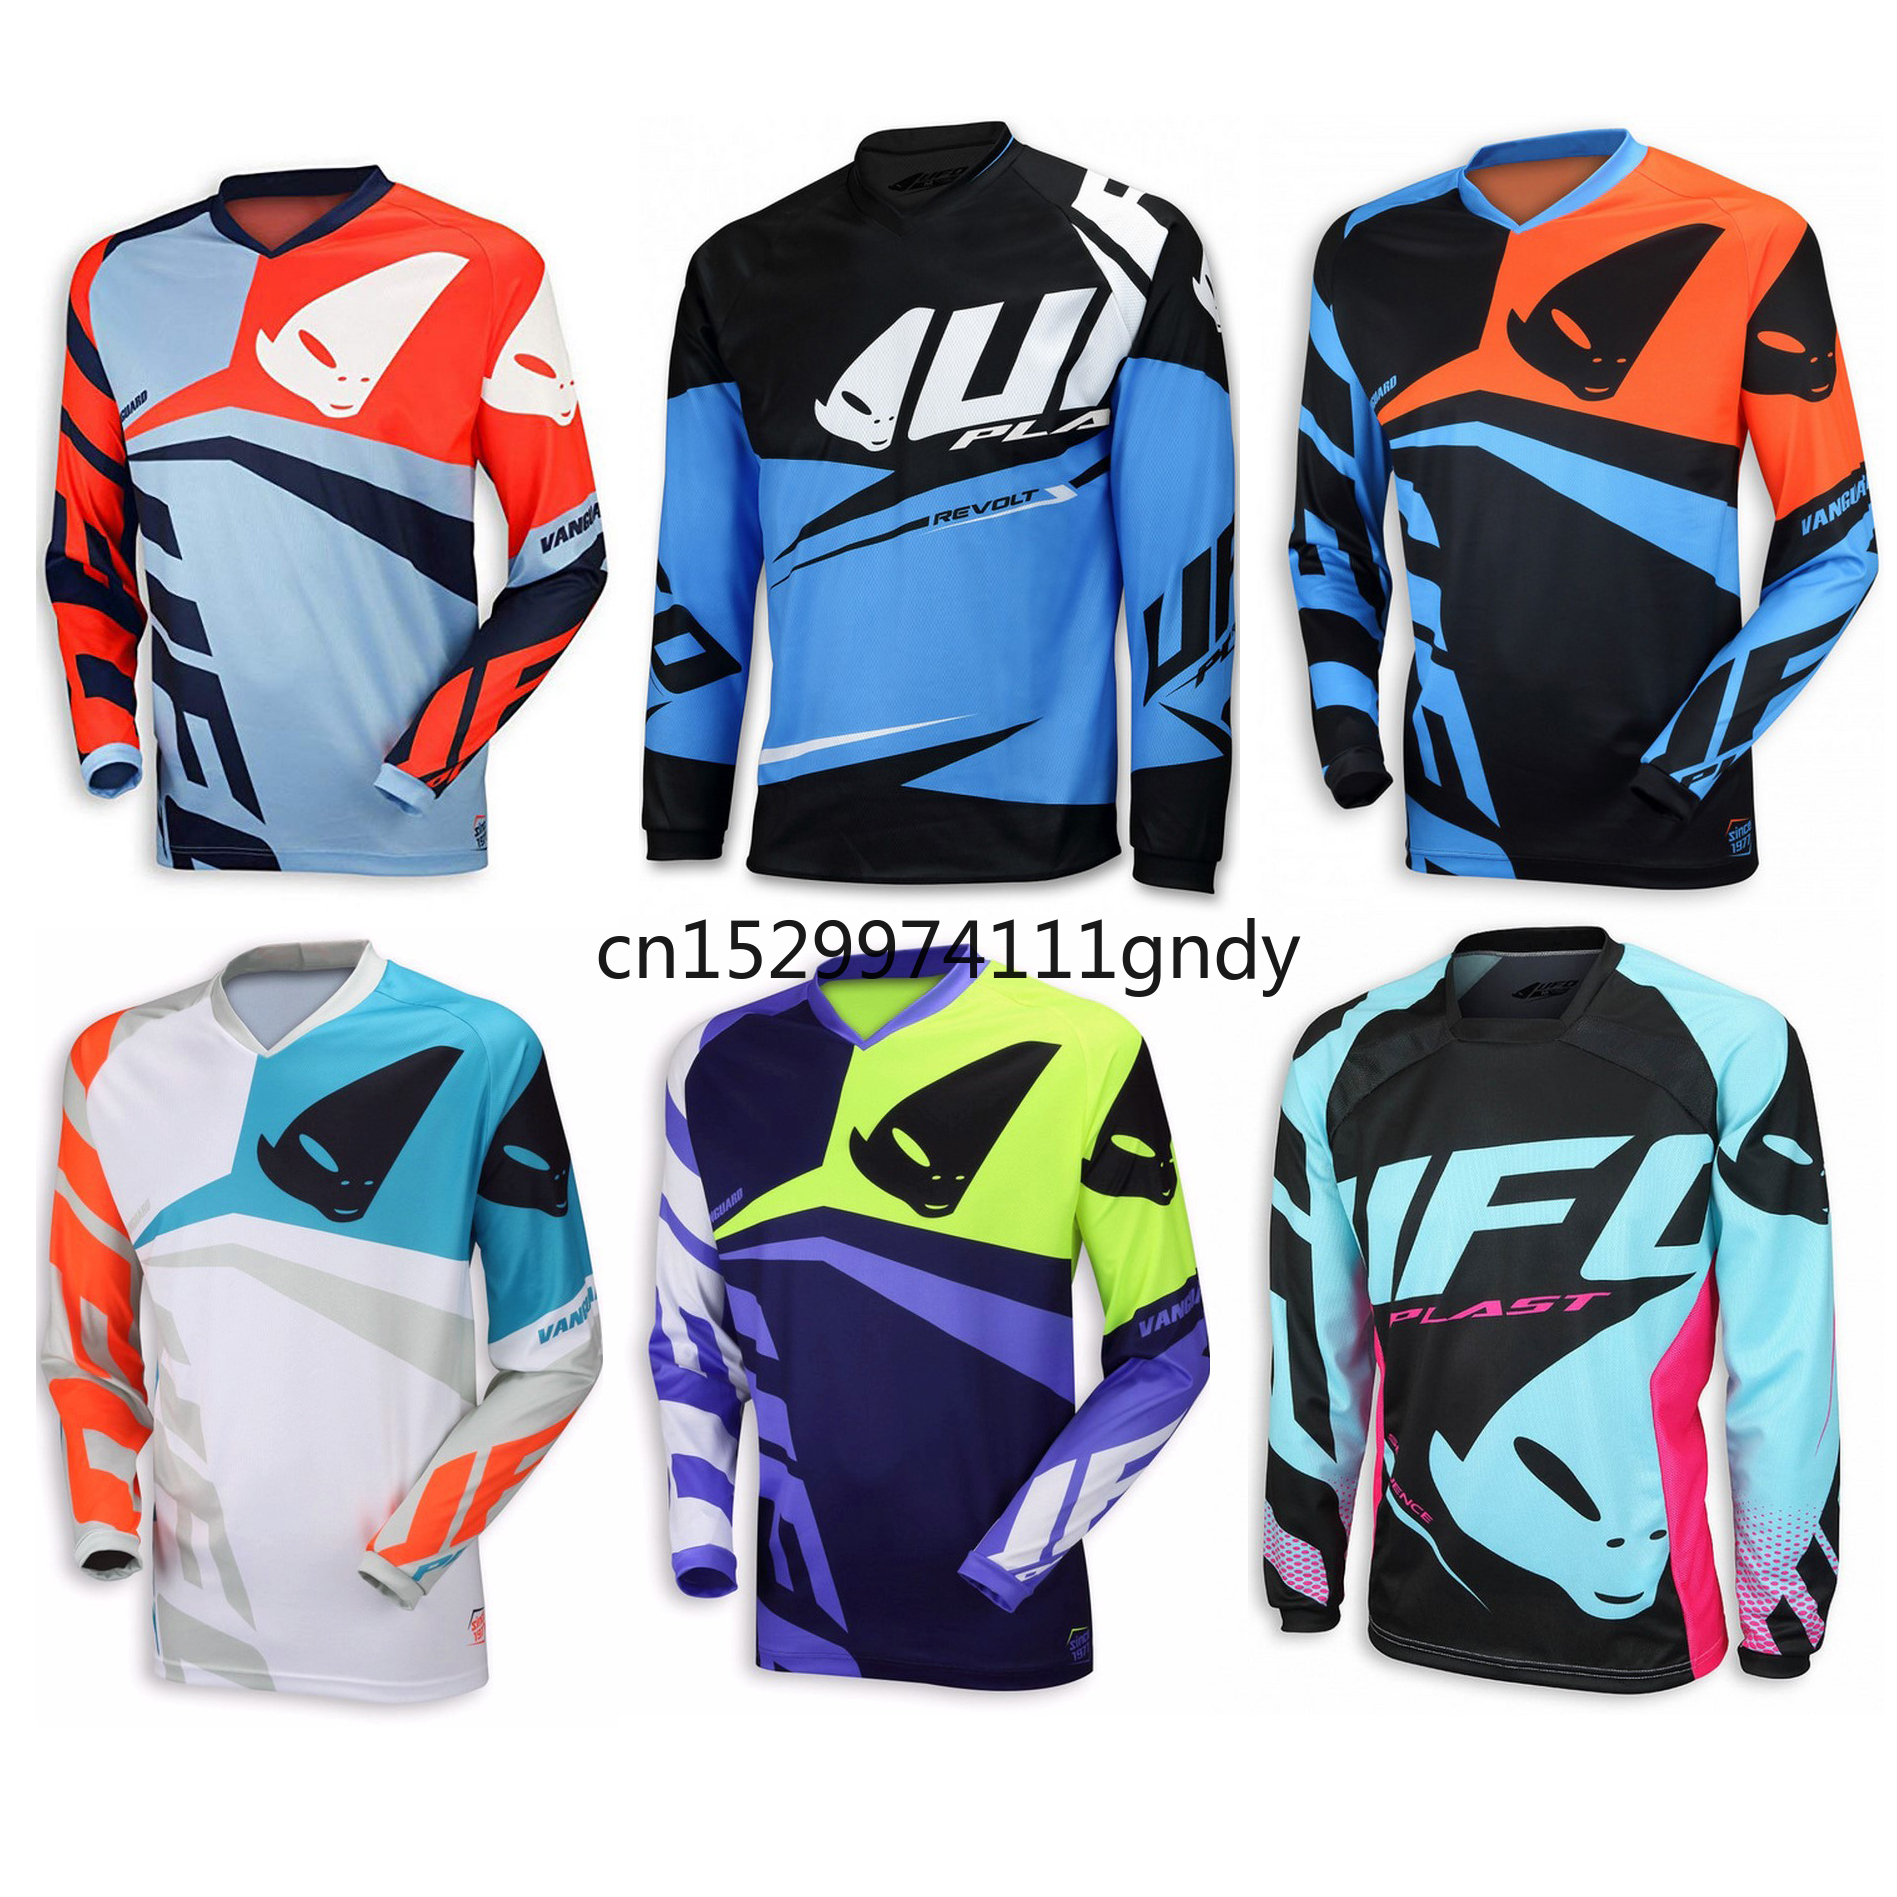 2020 Enduro Jeresy Downhill Jersey MTB Offroad Long Motorcycle Long Bike Jerseys Racing Riding For Men MTB T Shirt DH MX Jersey